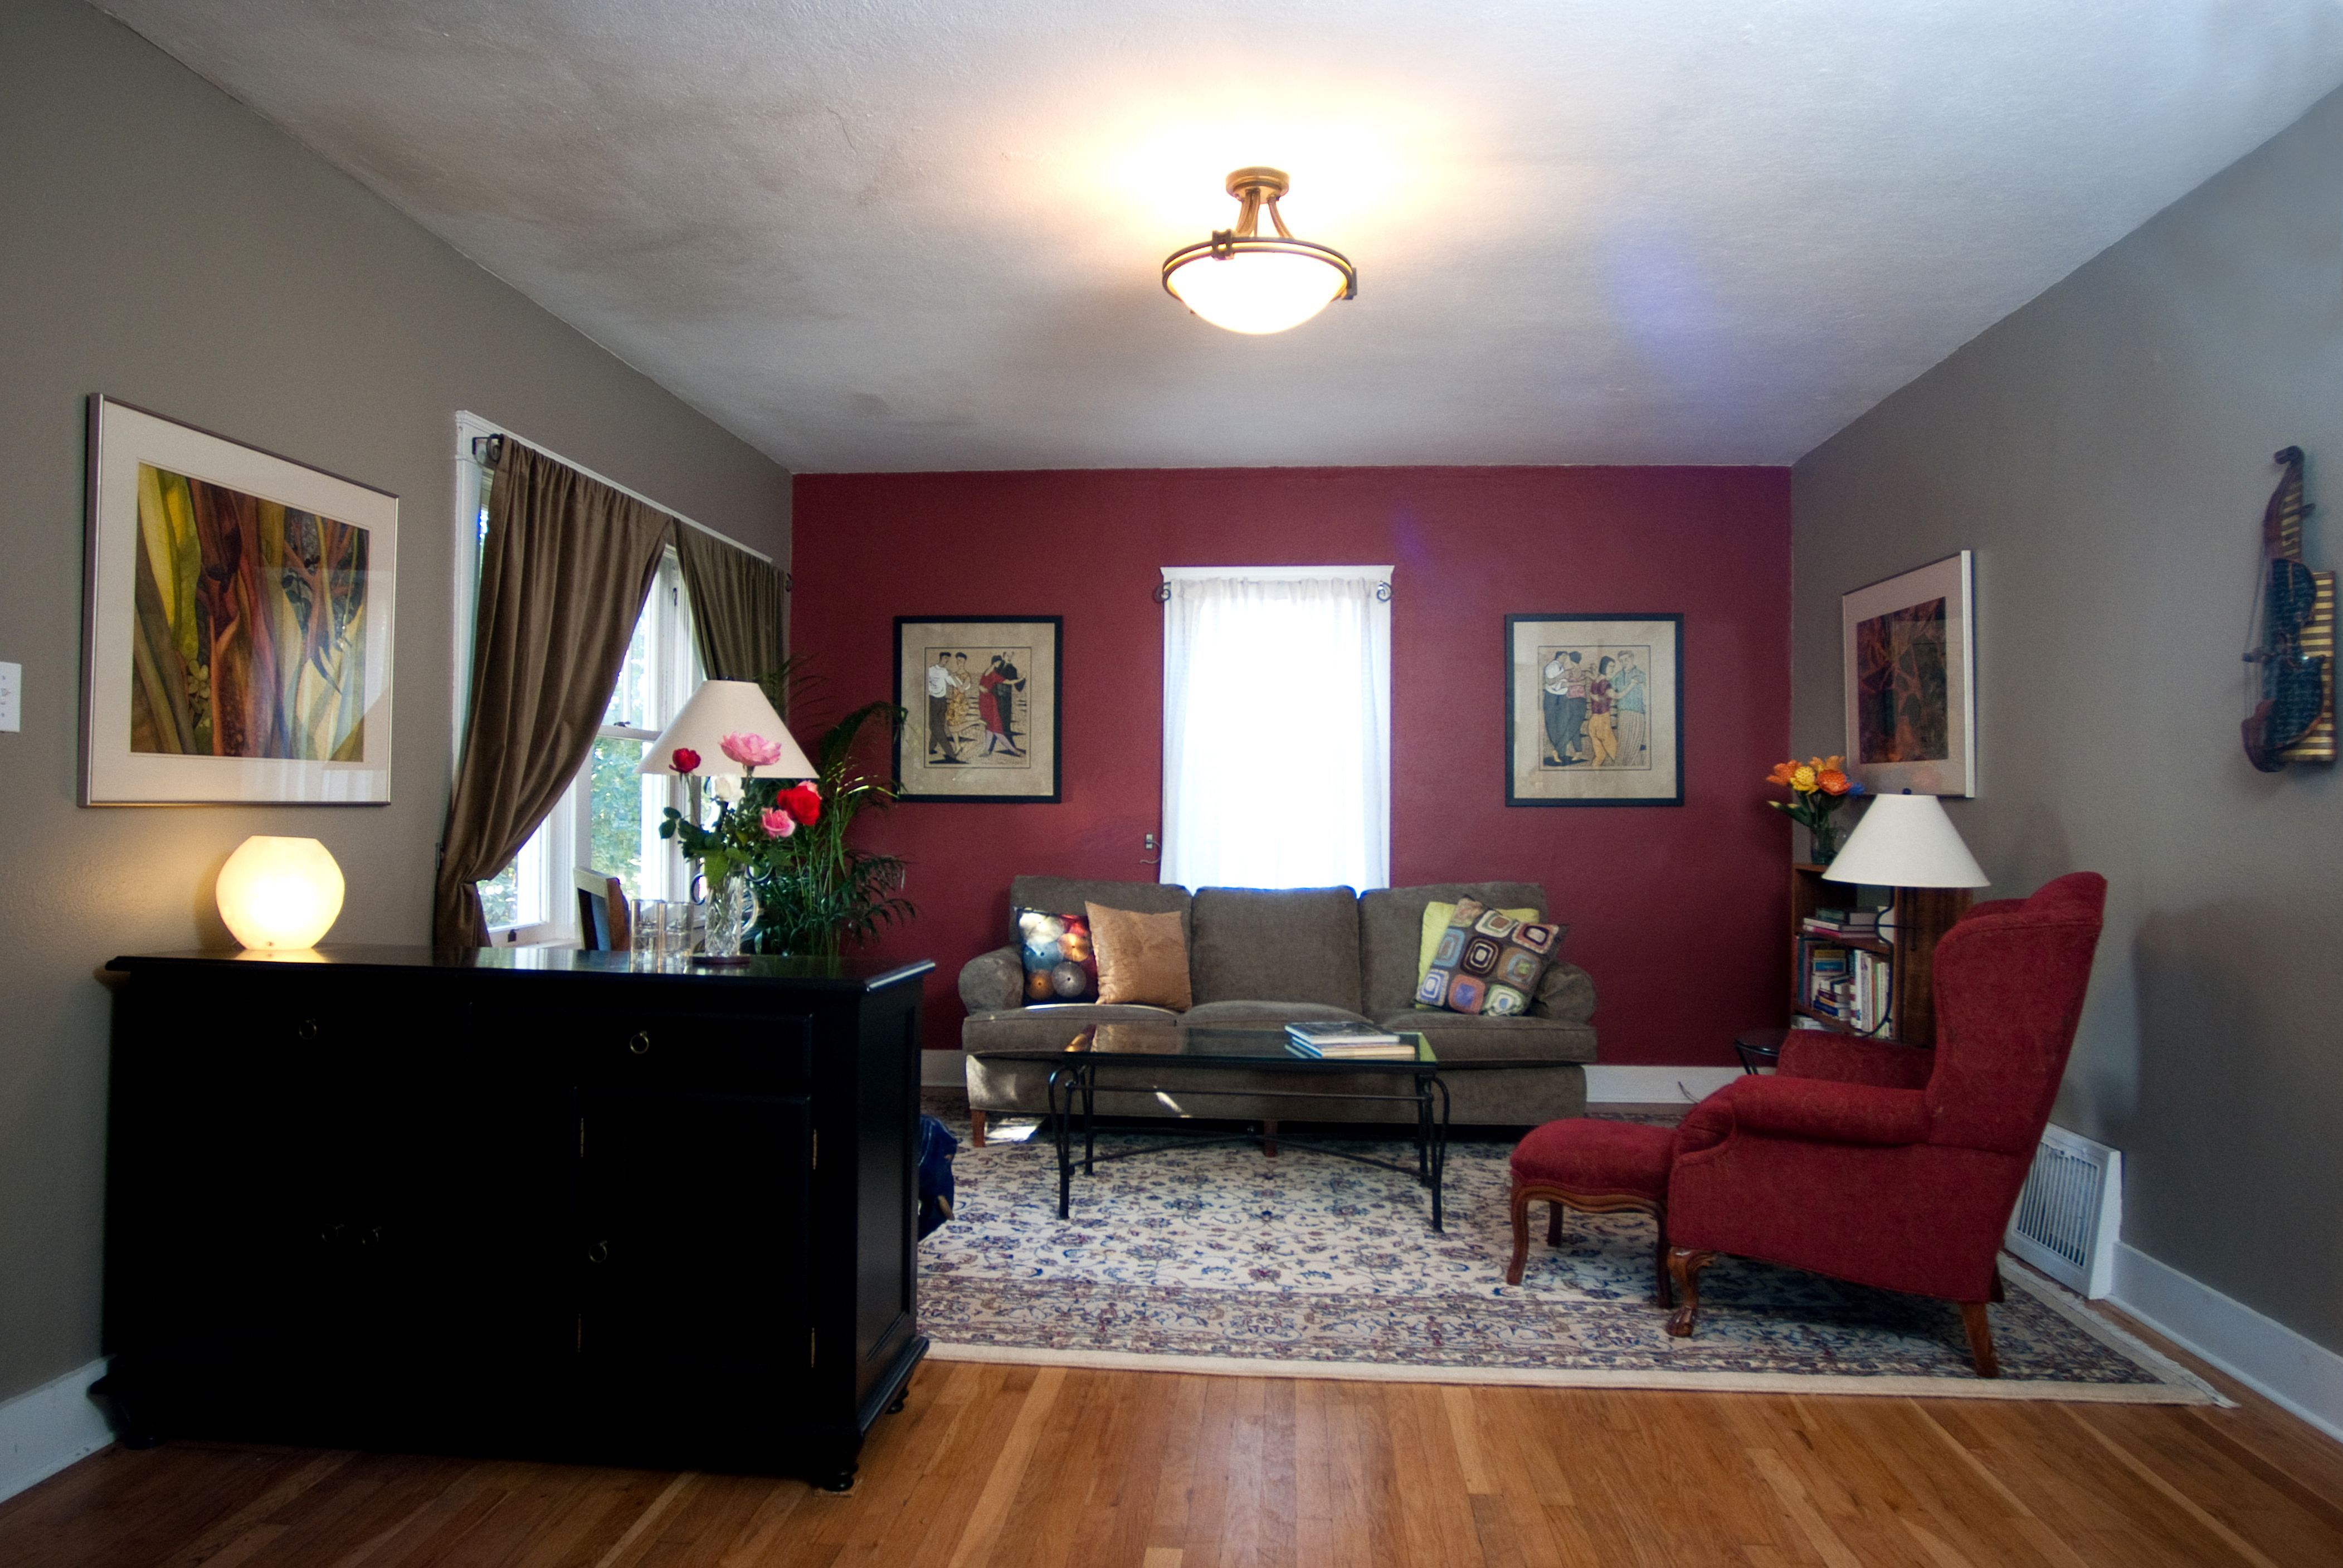 maroon paint for bedroom cost 00 00 elbow grease i on paint for living room walls id=22555